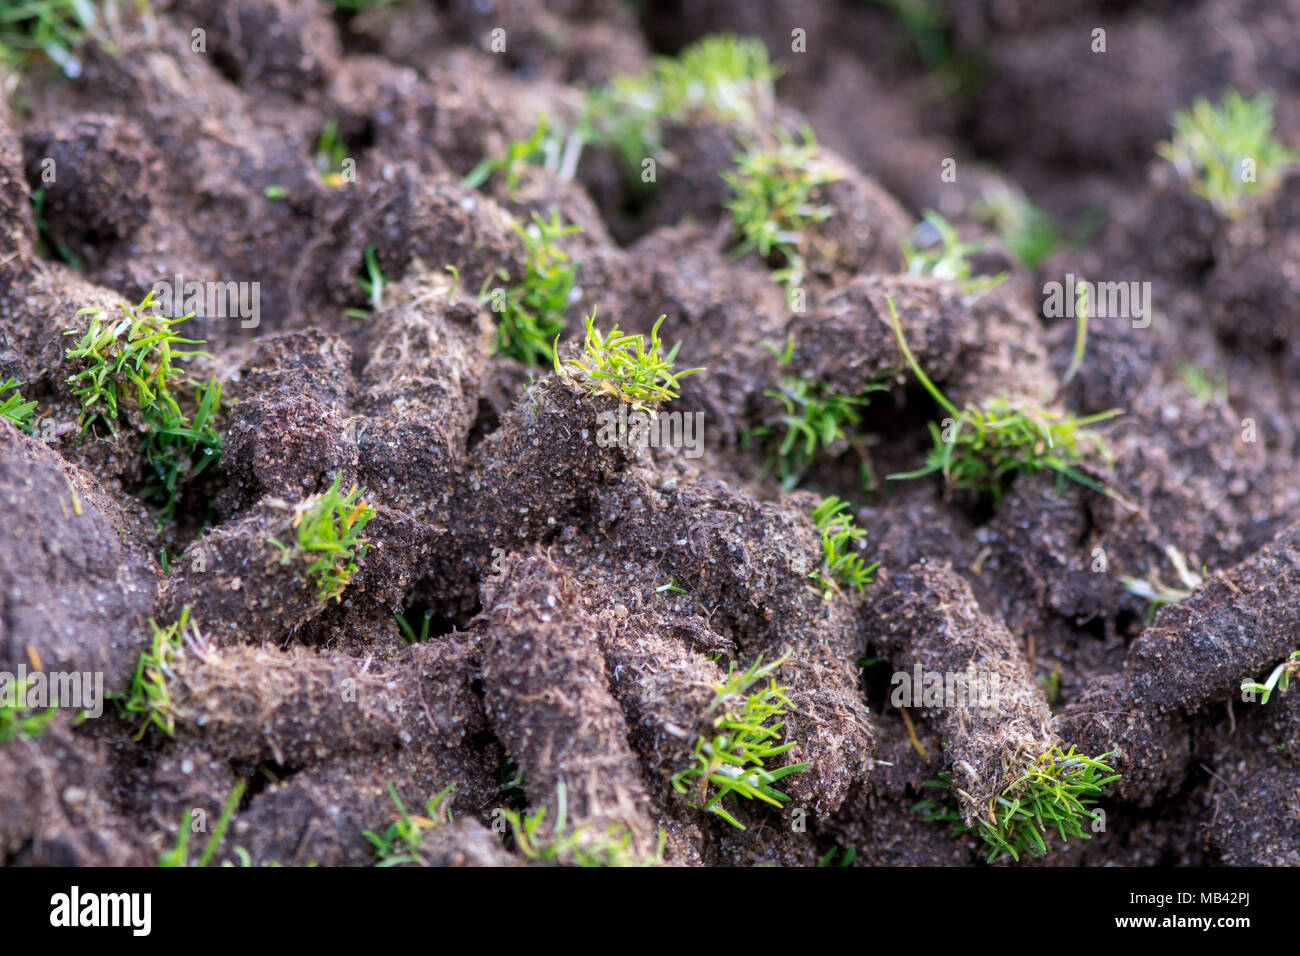 Pile of plugs of soil removed from golf course. Waste of core aeration technique used in the upkeep of lawns and turf - Stock Image